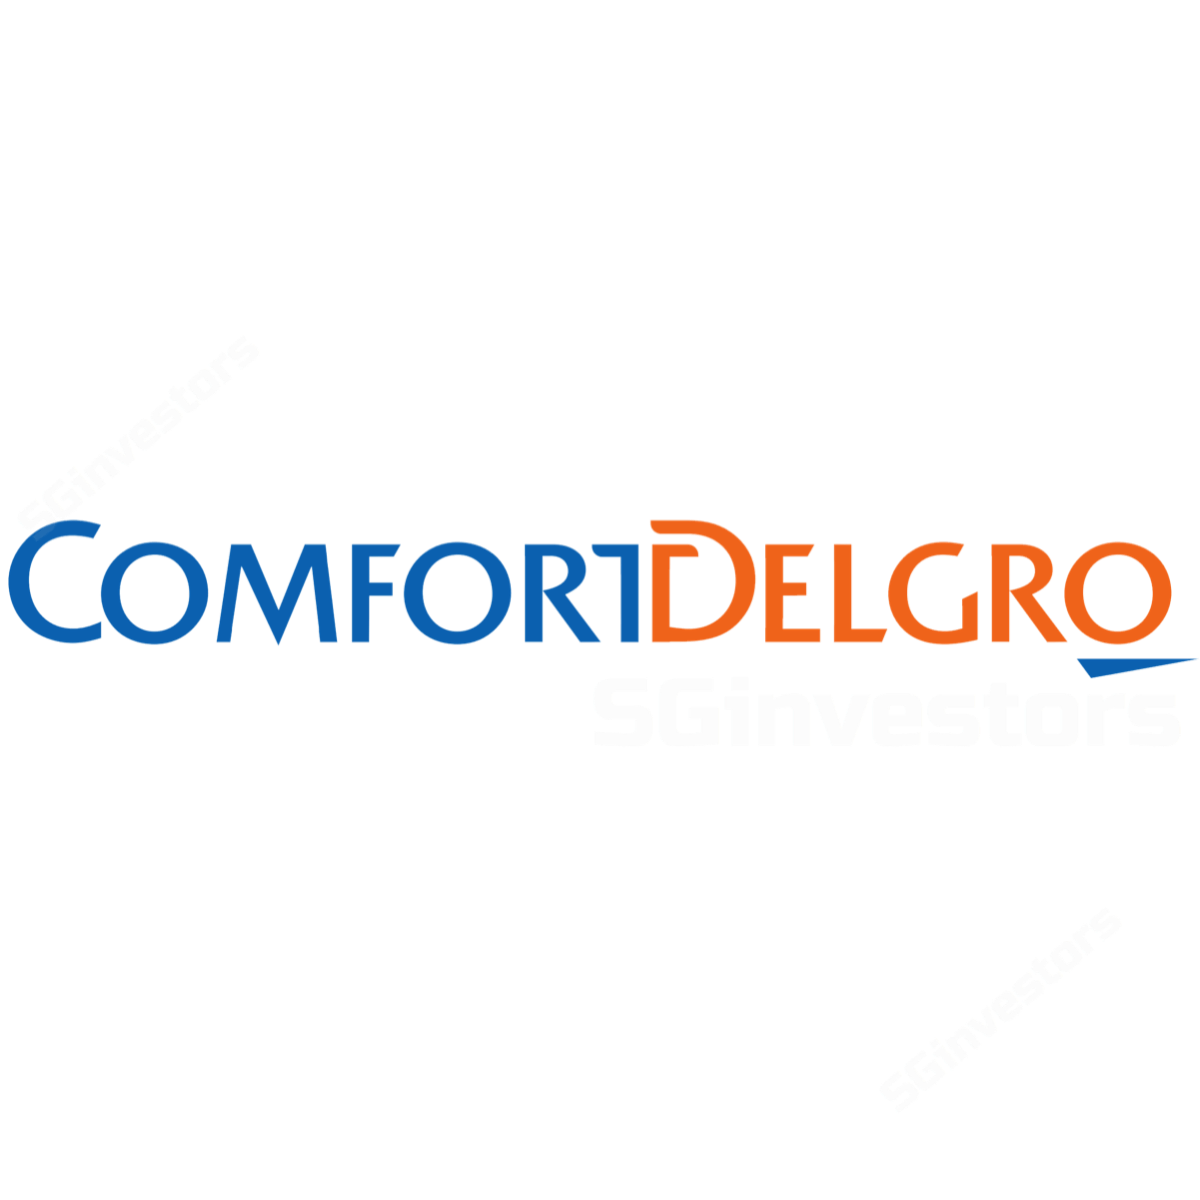 ComfortDelGro Corp Ltd - Phillip Securities 2018-01-04: Earnings To Bottom Out In FY17e